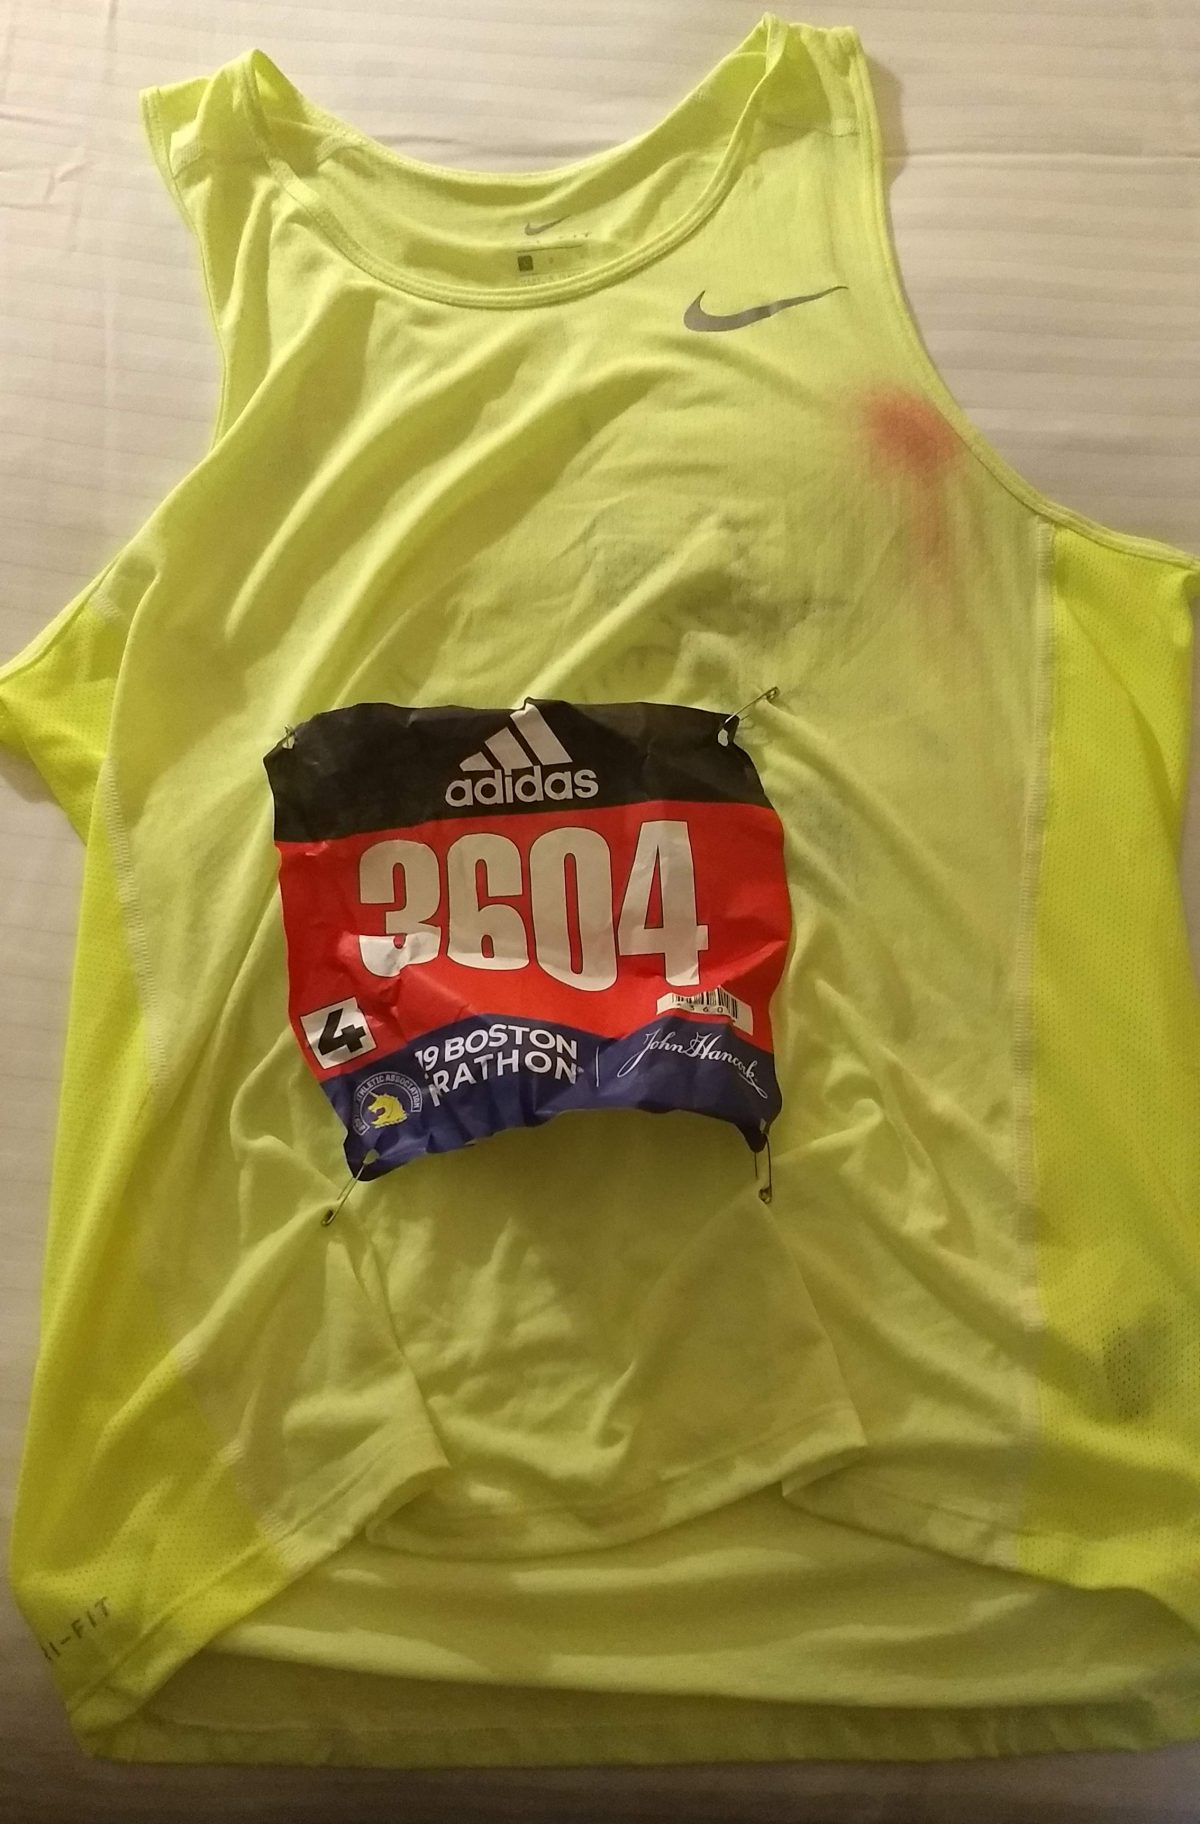 123rd Boston Marathon (2019) Race Report